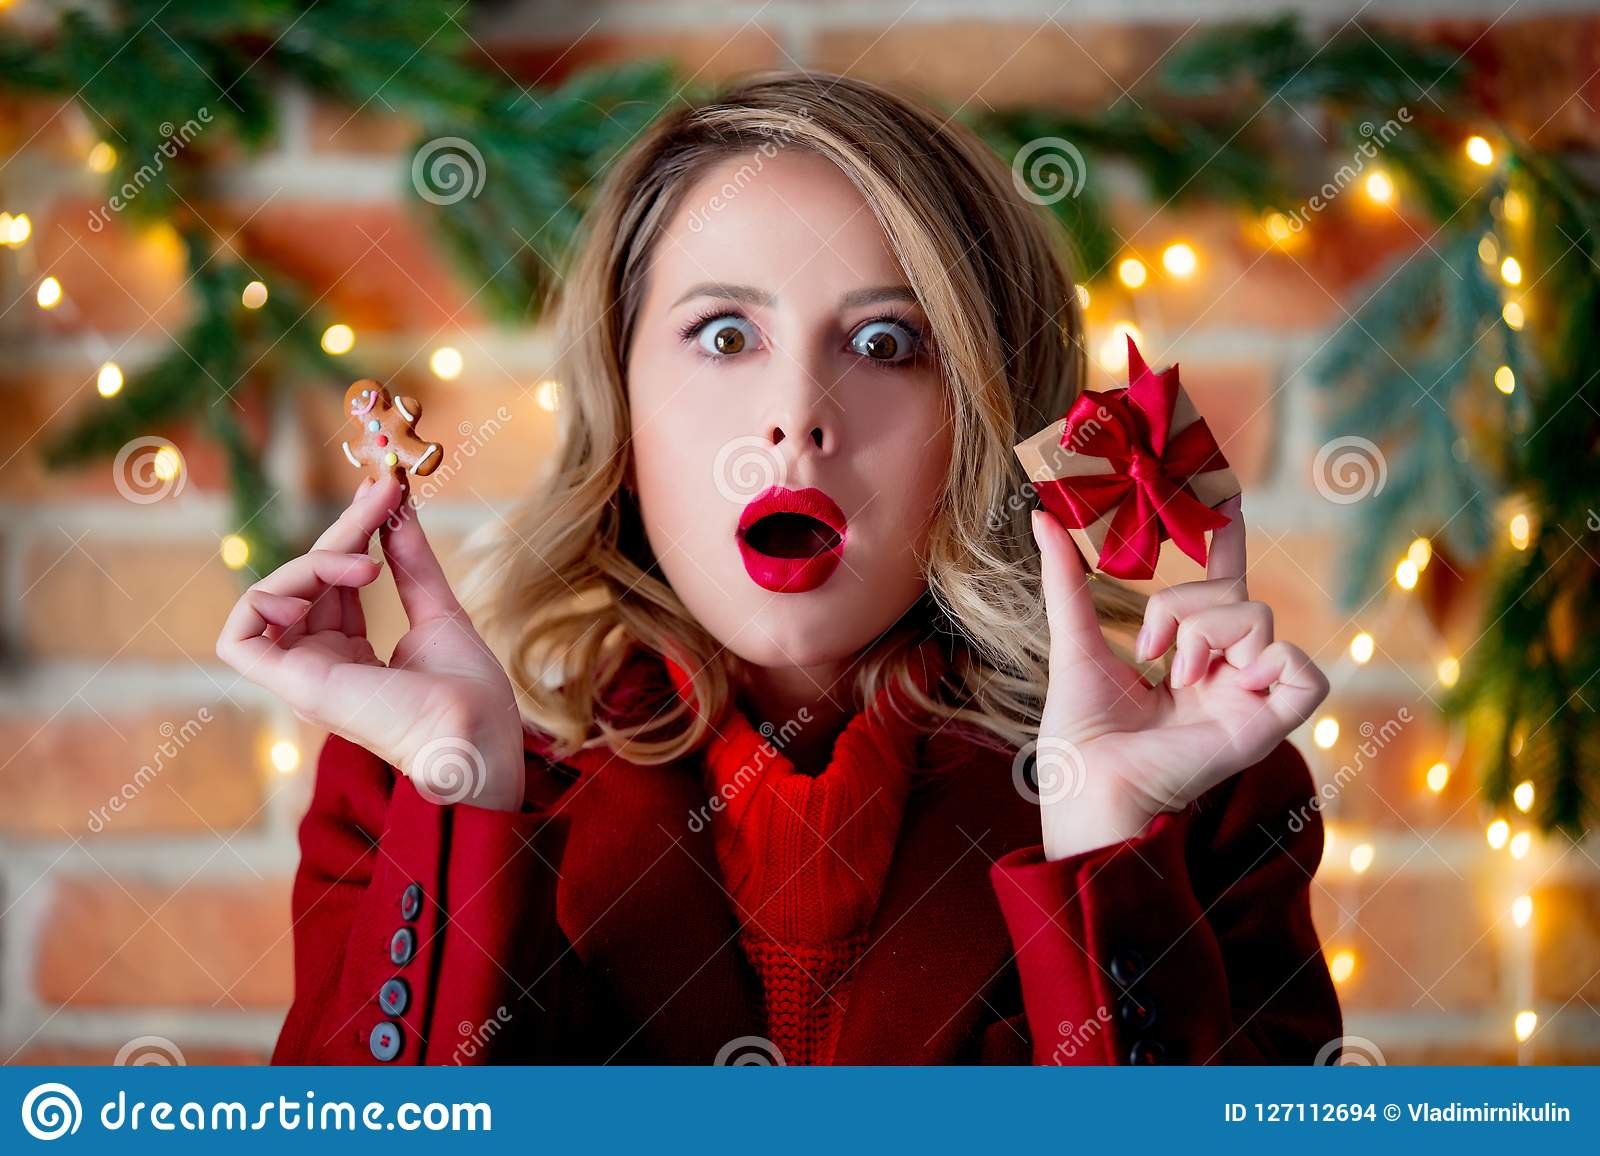 Girl in red coat with gingerbread man and gift box